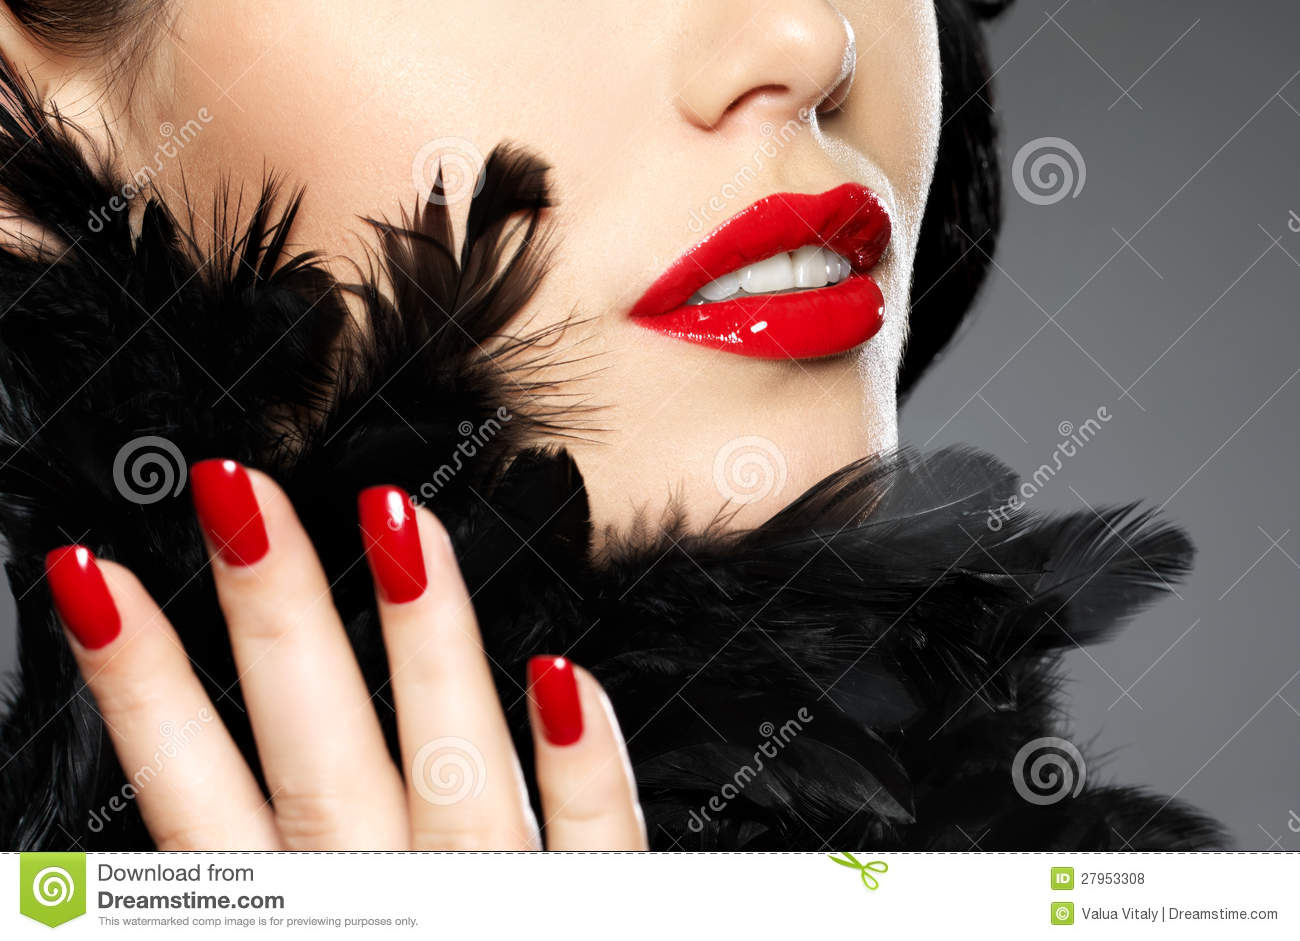 Woman With Fashion Red Nails And Sensual Lips Stock Image - Image of ...